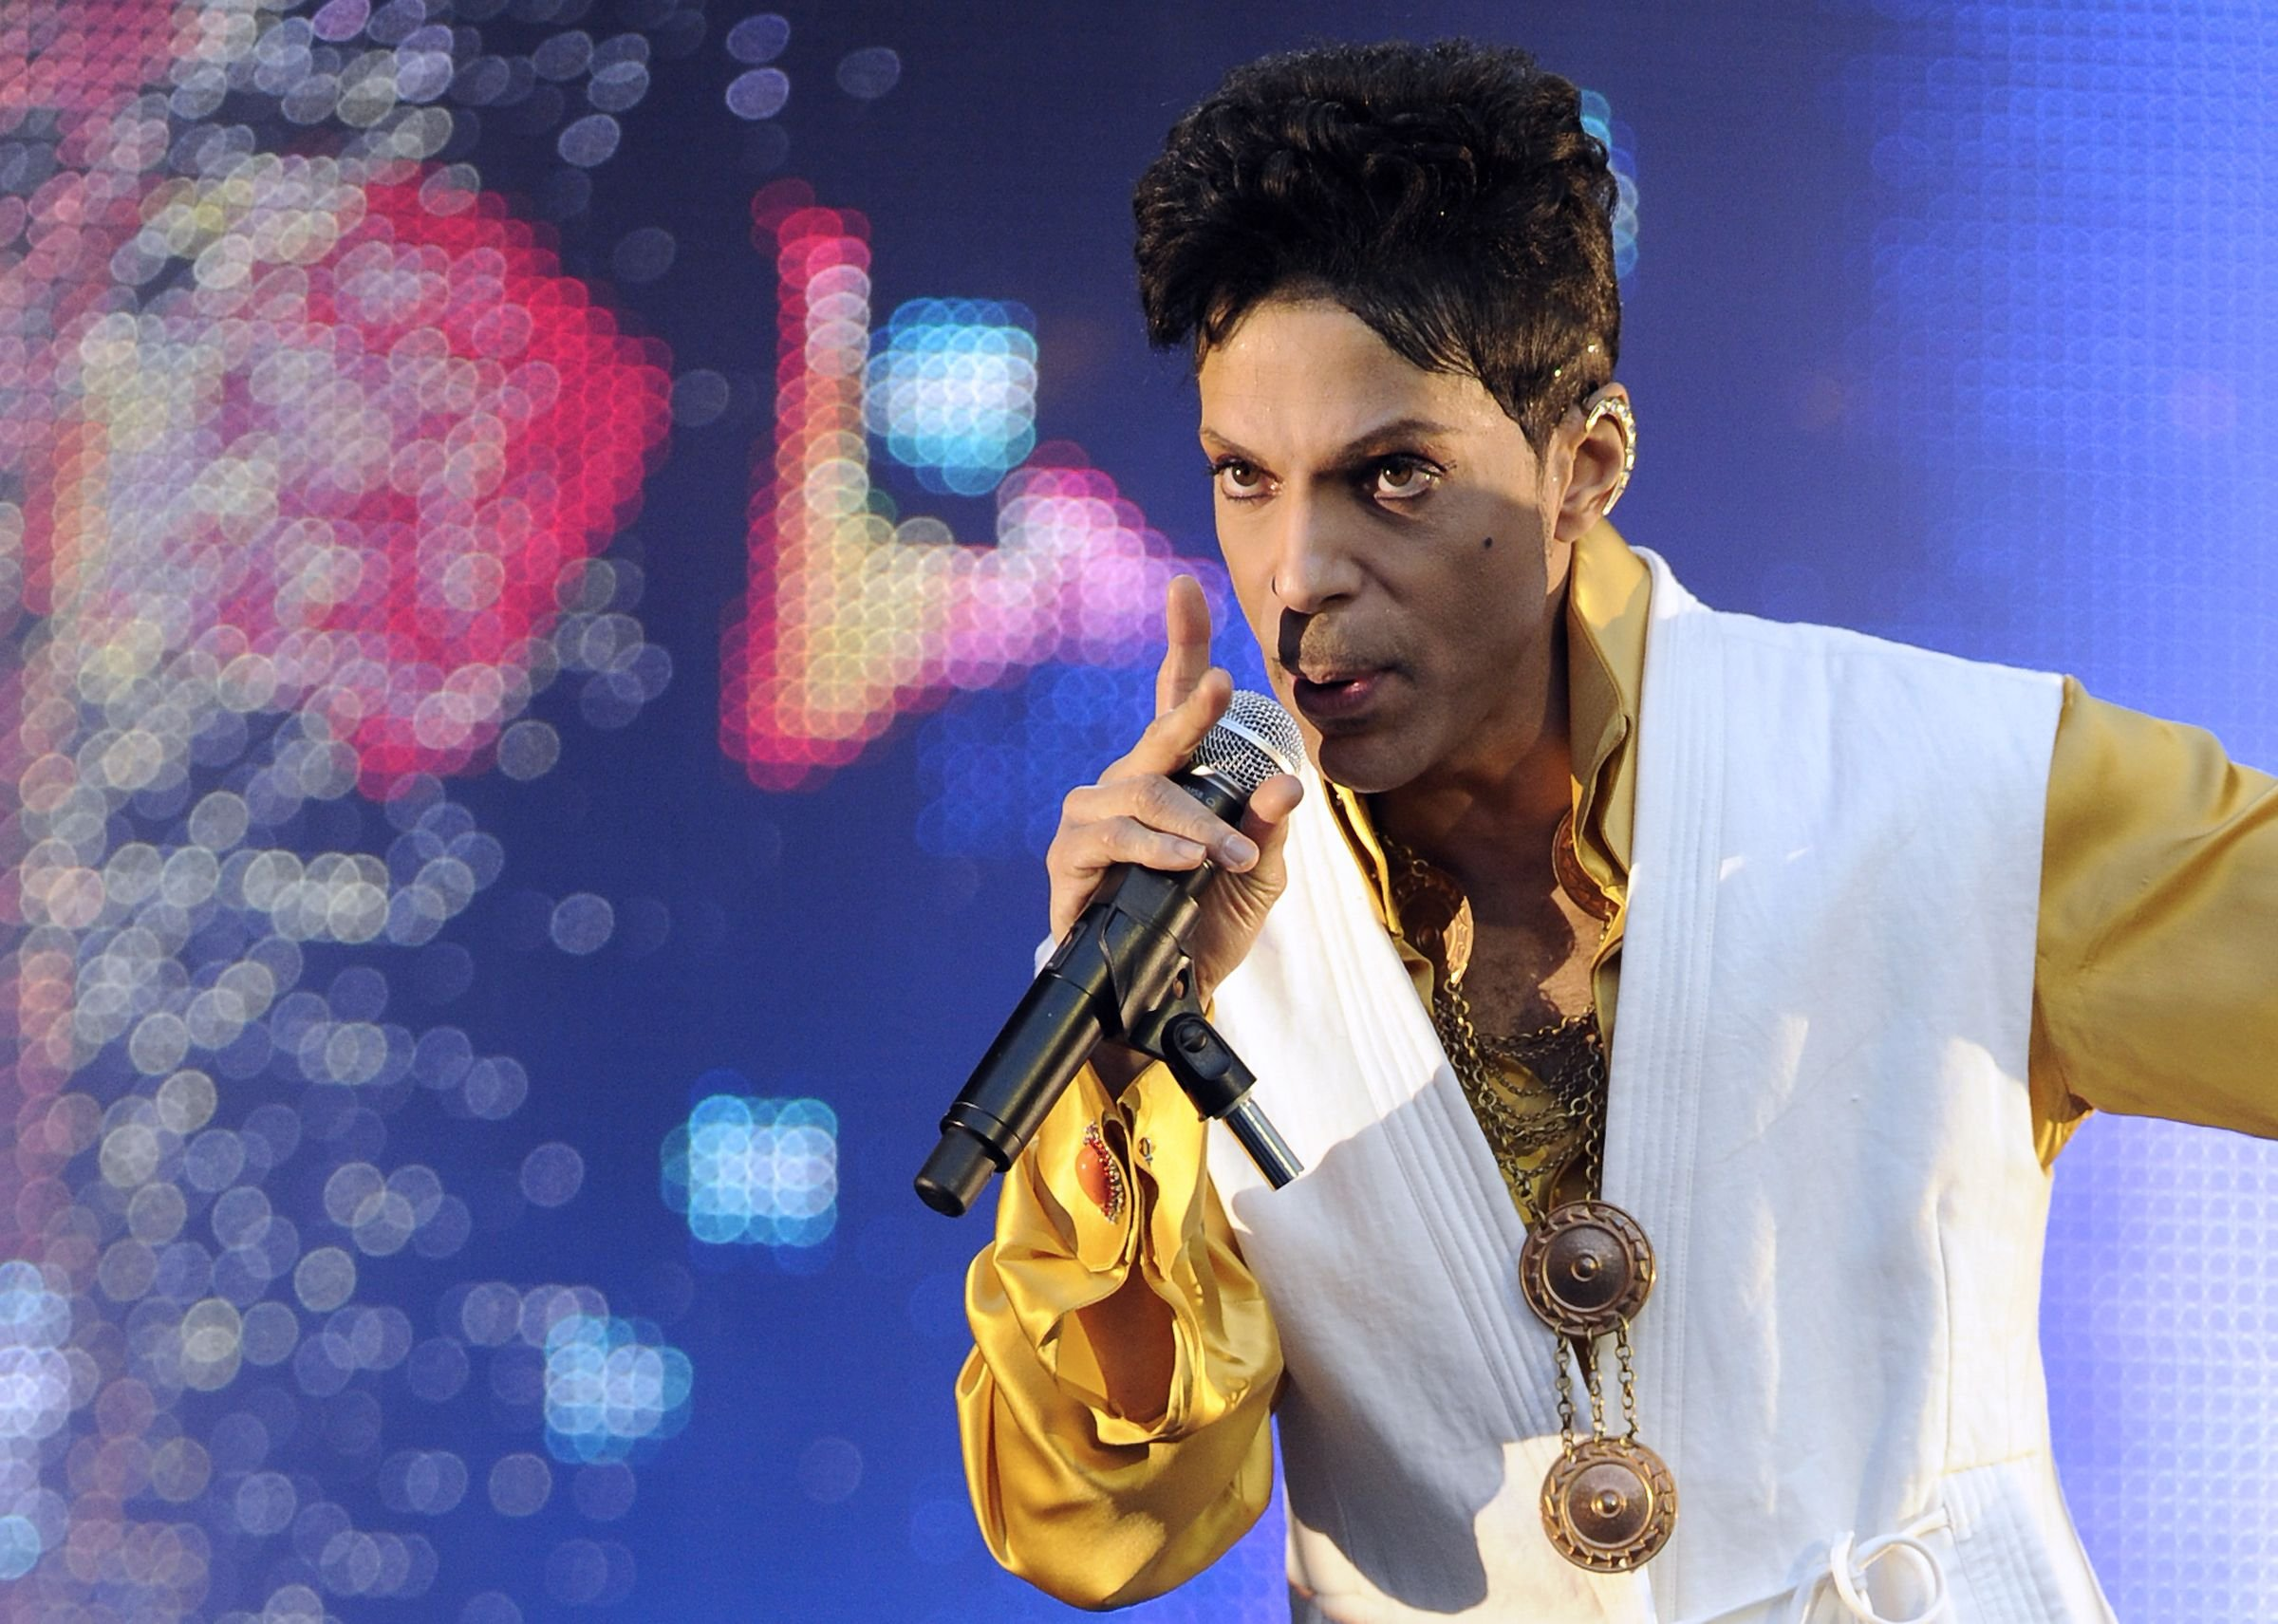 (FILES) This file photo taken on June 30, 2011 shows US singer and musician Prince performing on stage at the Stade de France in Saint-Denis, outside Paris. Pop icon Prince -- one of the most influential but elusive figures in music -- has died at his compound in Minnesota, entertainment website TMZ reported on April 21, 2016, citing unnamed sources. Local authorities said a death investigation was underway at Prince's Paisley Park complex, but did not give the identity of the fatality. / AFP PHOTO / BERTRAND GUAYBERTRAND GUAY/AFP/Getty Images